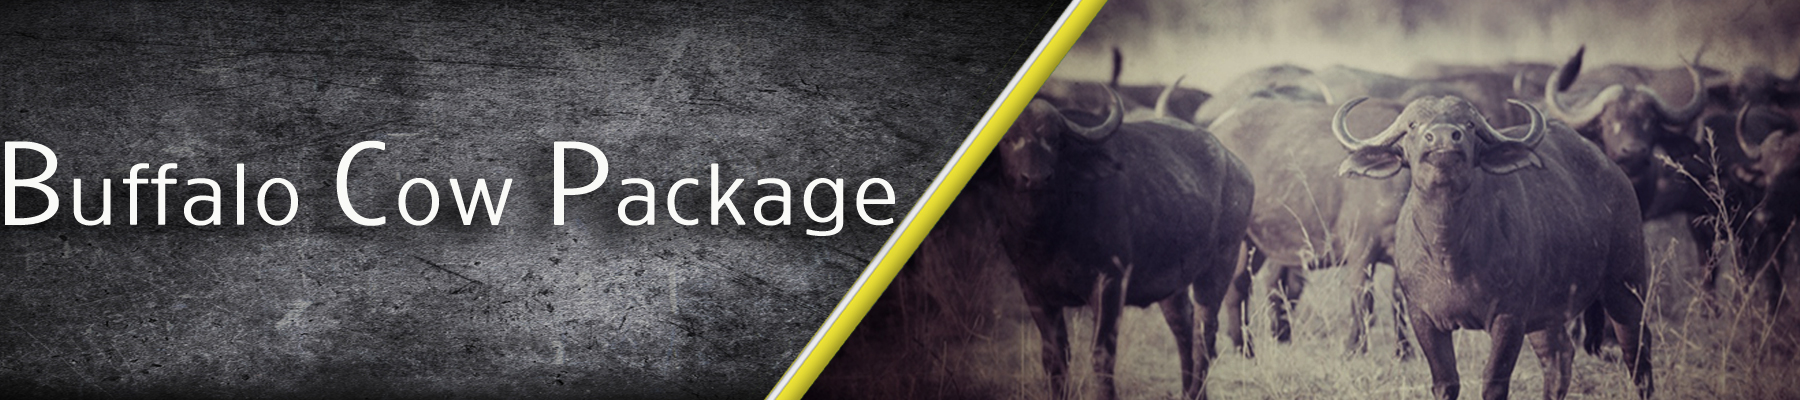 Buffalo-Cow-Package